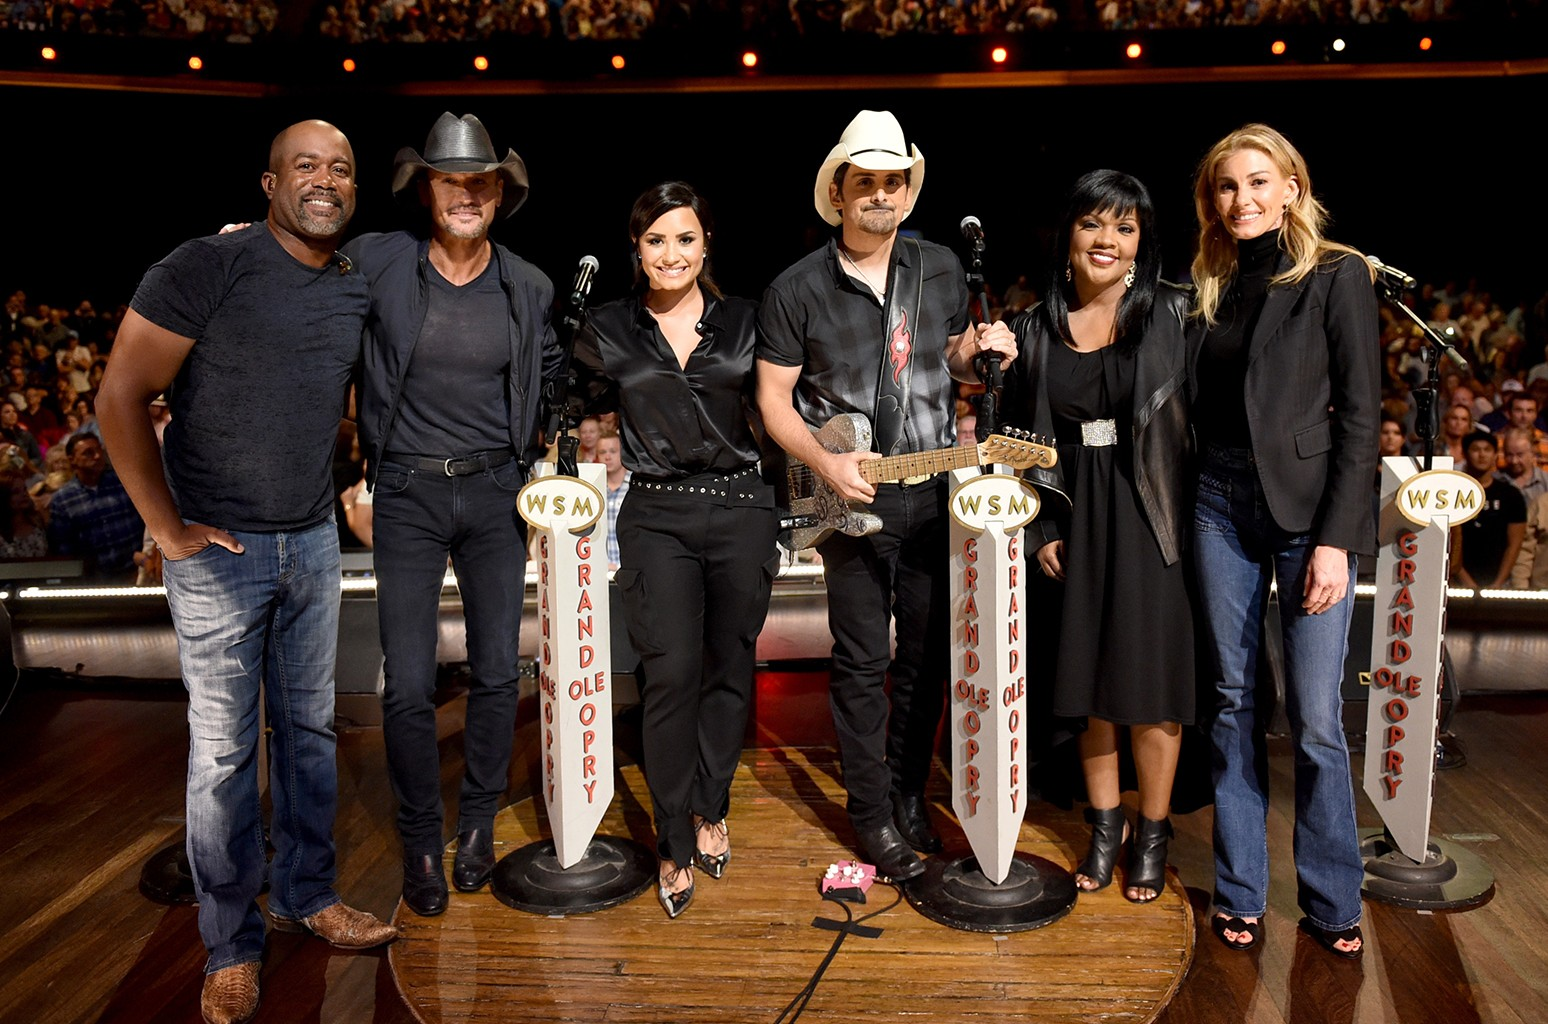 Darius Rucker, Tim McGraw, Demi Lovato, Brad Paisley, CeCe Winans, and Faith Hill attend Hand in Hand: A Benefit for Hurricane Relief at the Grand Ole Opry House on Sept. 12, 2017 in Nashville, Tenn.